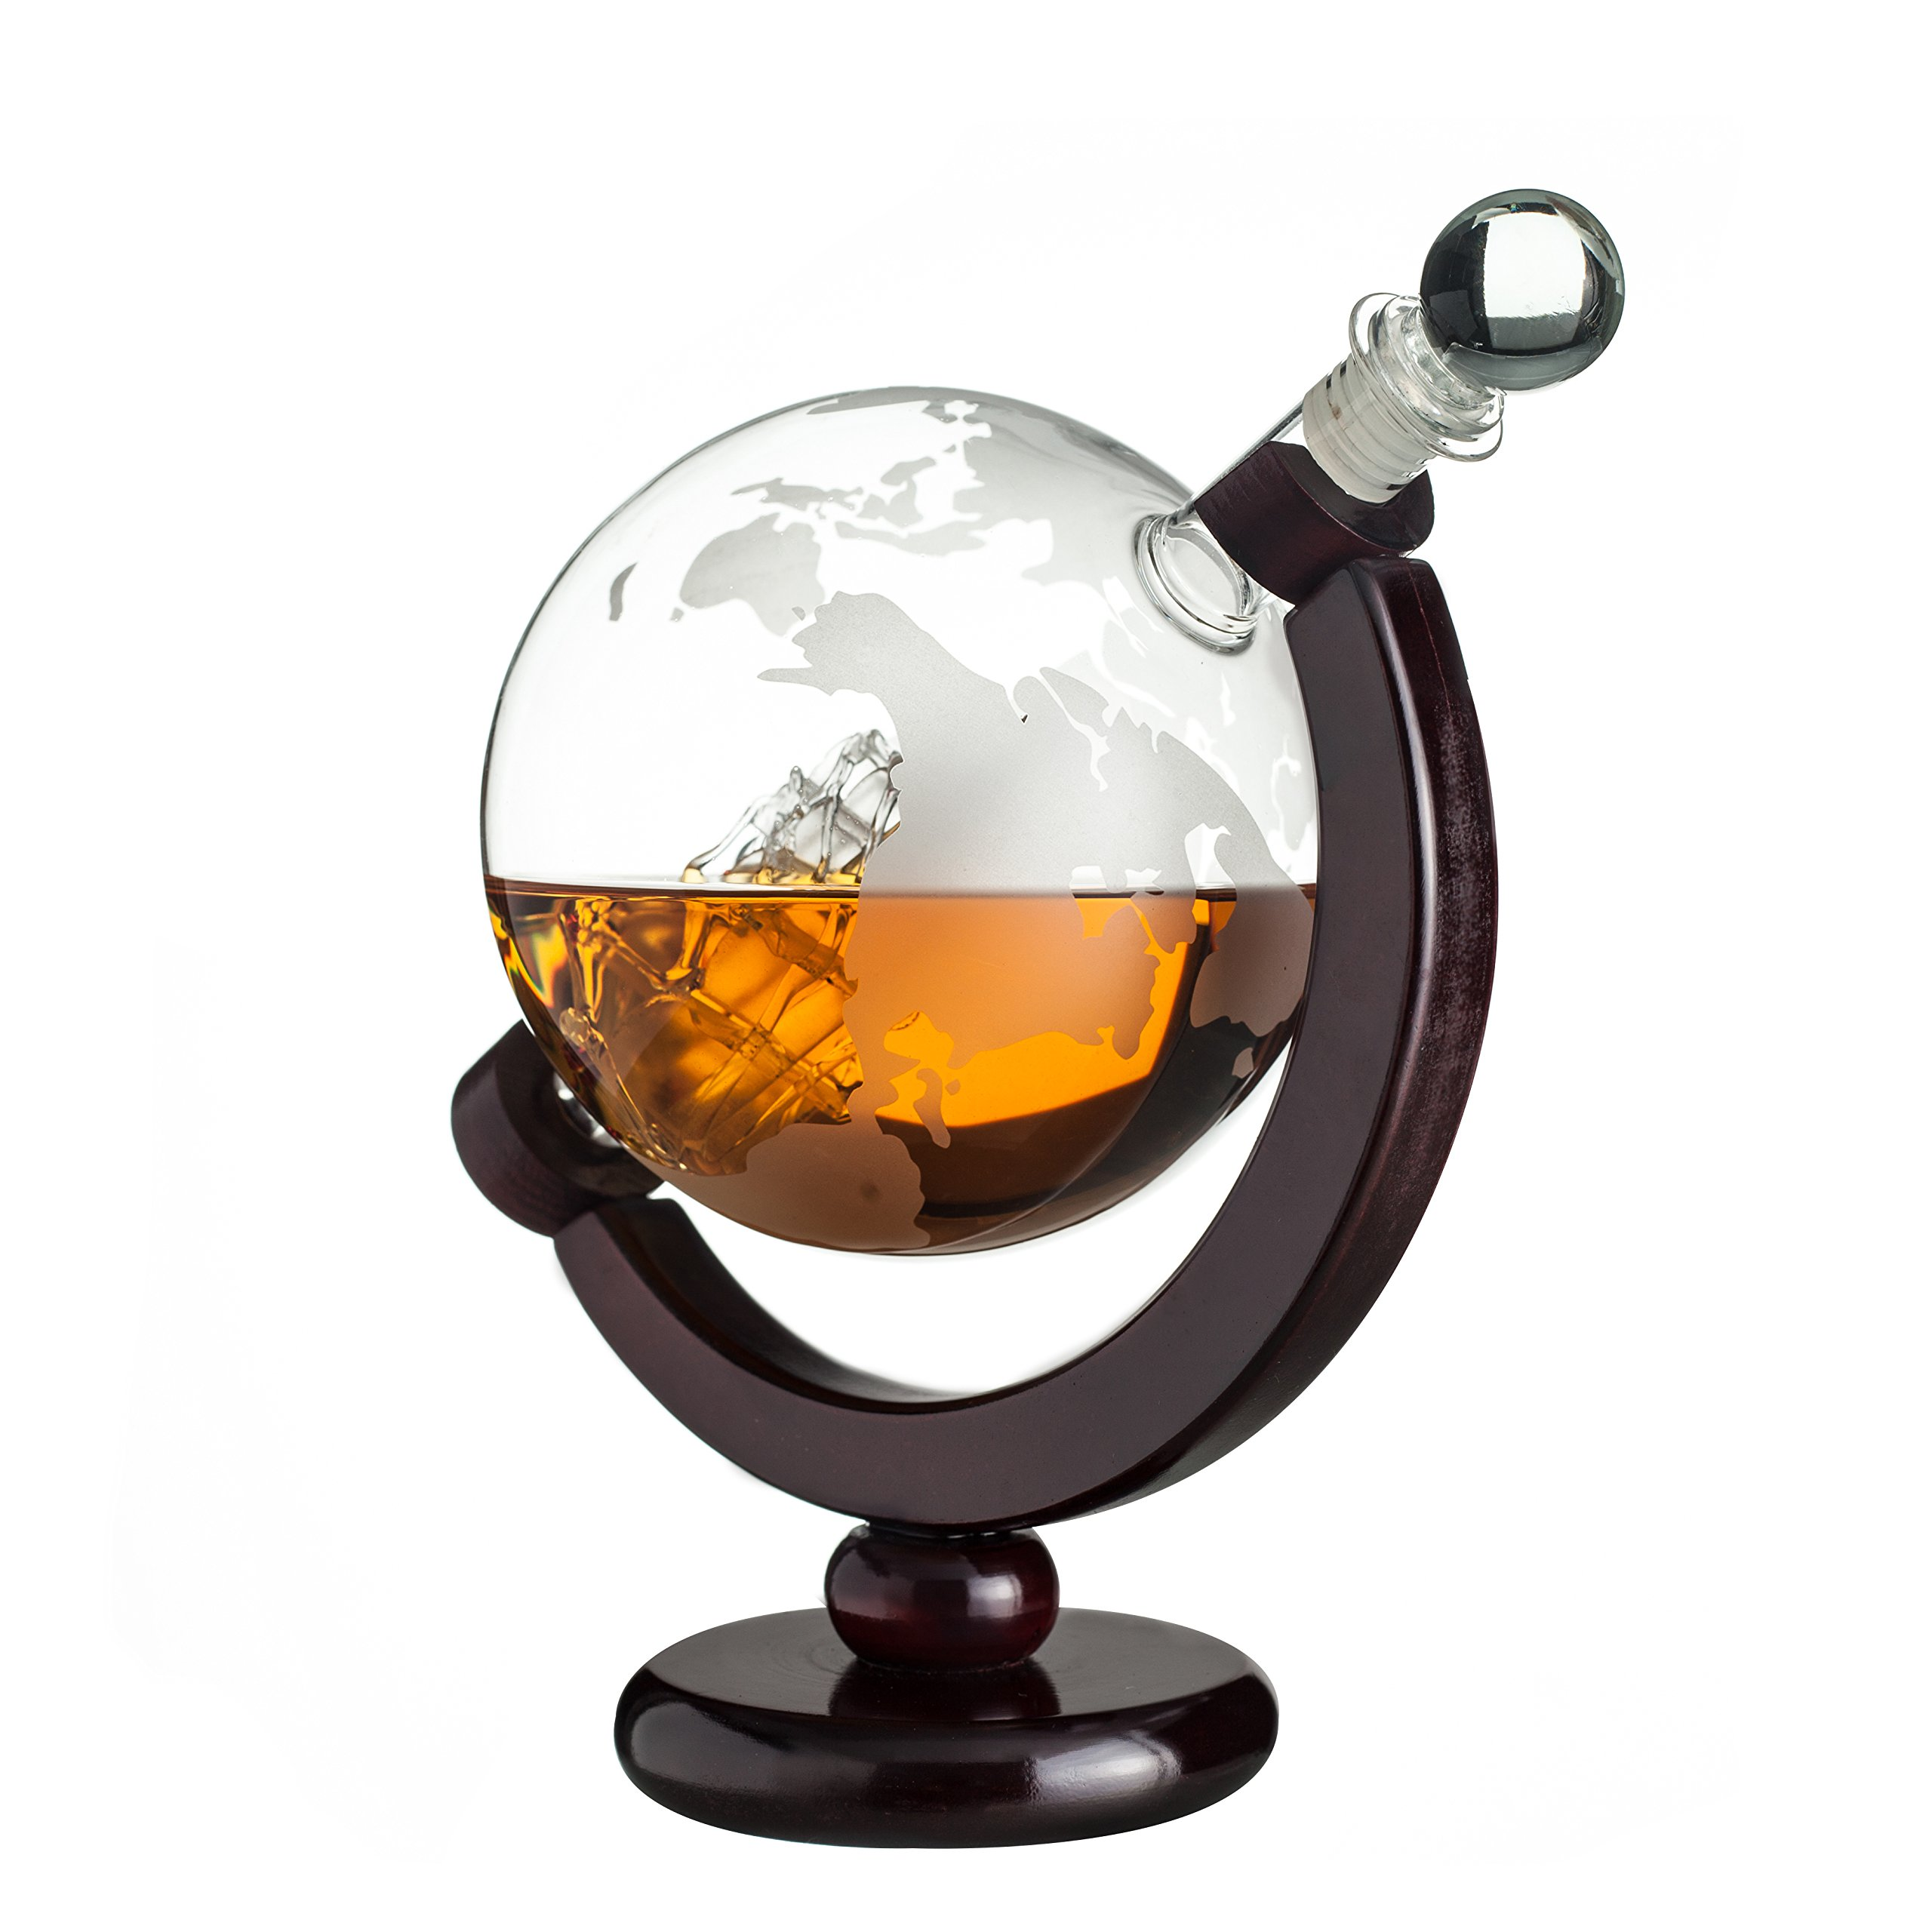 Whiskey Globe Decanter with Antique Dark Finished Wood Stand Bar Funnel 850ml Perfect Gift Set Scotch Liquor Bourbon Wine Vodka by ERAVINO (Image #3)